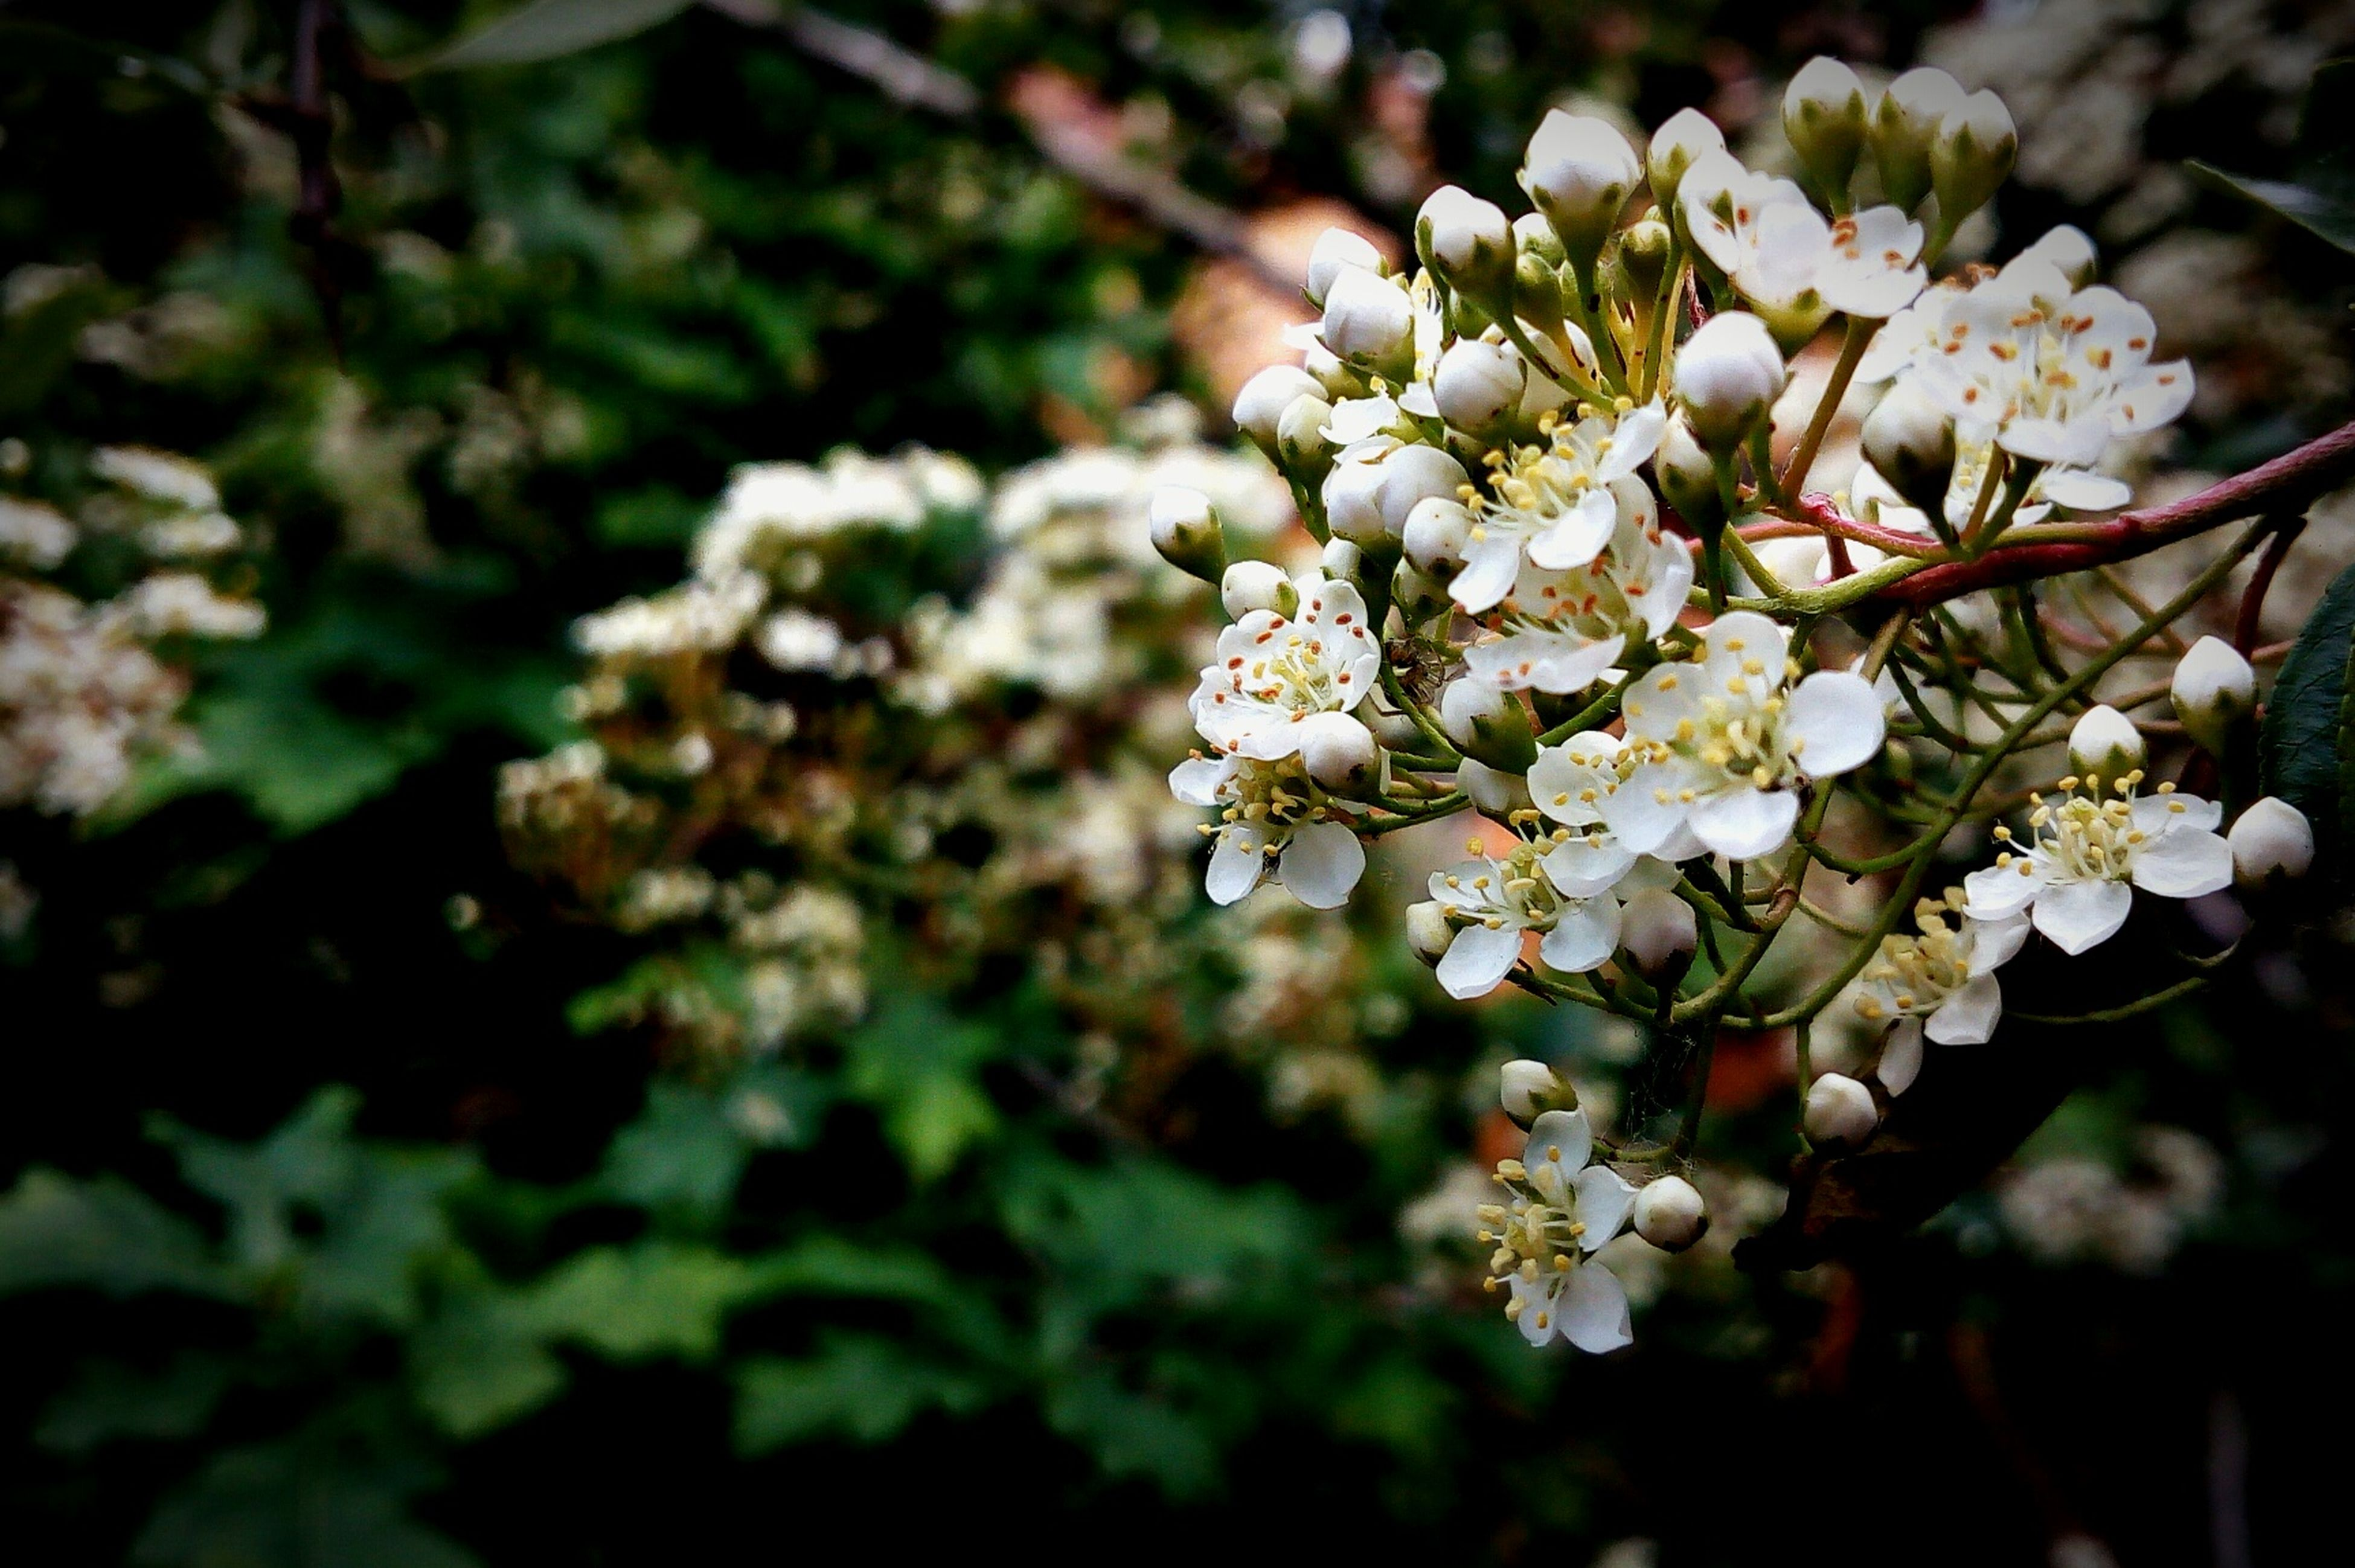 flower, fragility, white color, beauty in nature, nature, freshness, blossom, petal, growth, botany, apple blossom, springtime, apple tree, no people, flower head, close-up, branch, day, focus on foreground, twig, outdoors, stamen, tree, blooming, plant